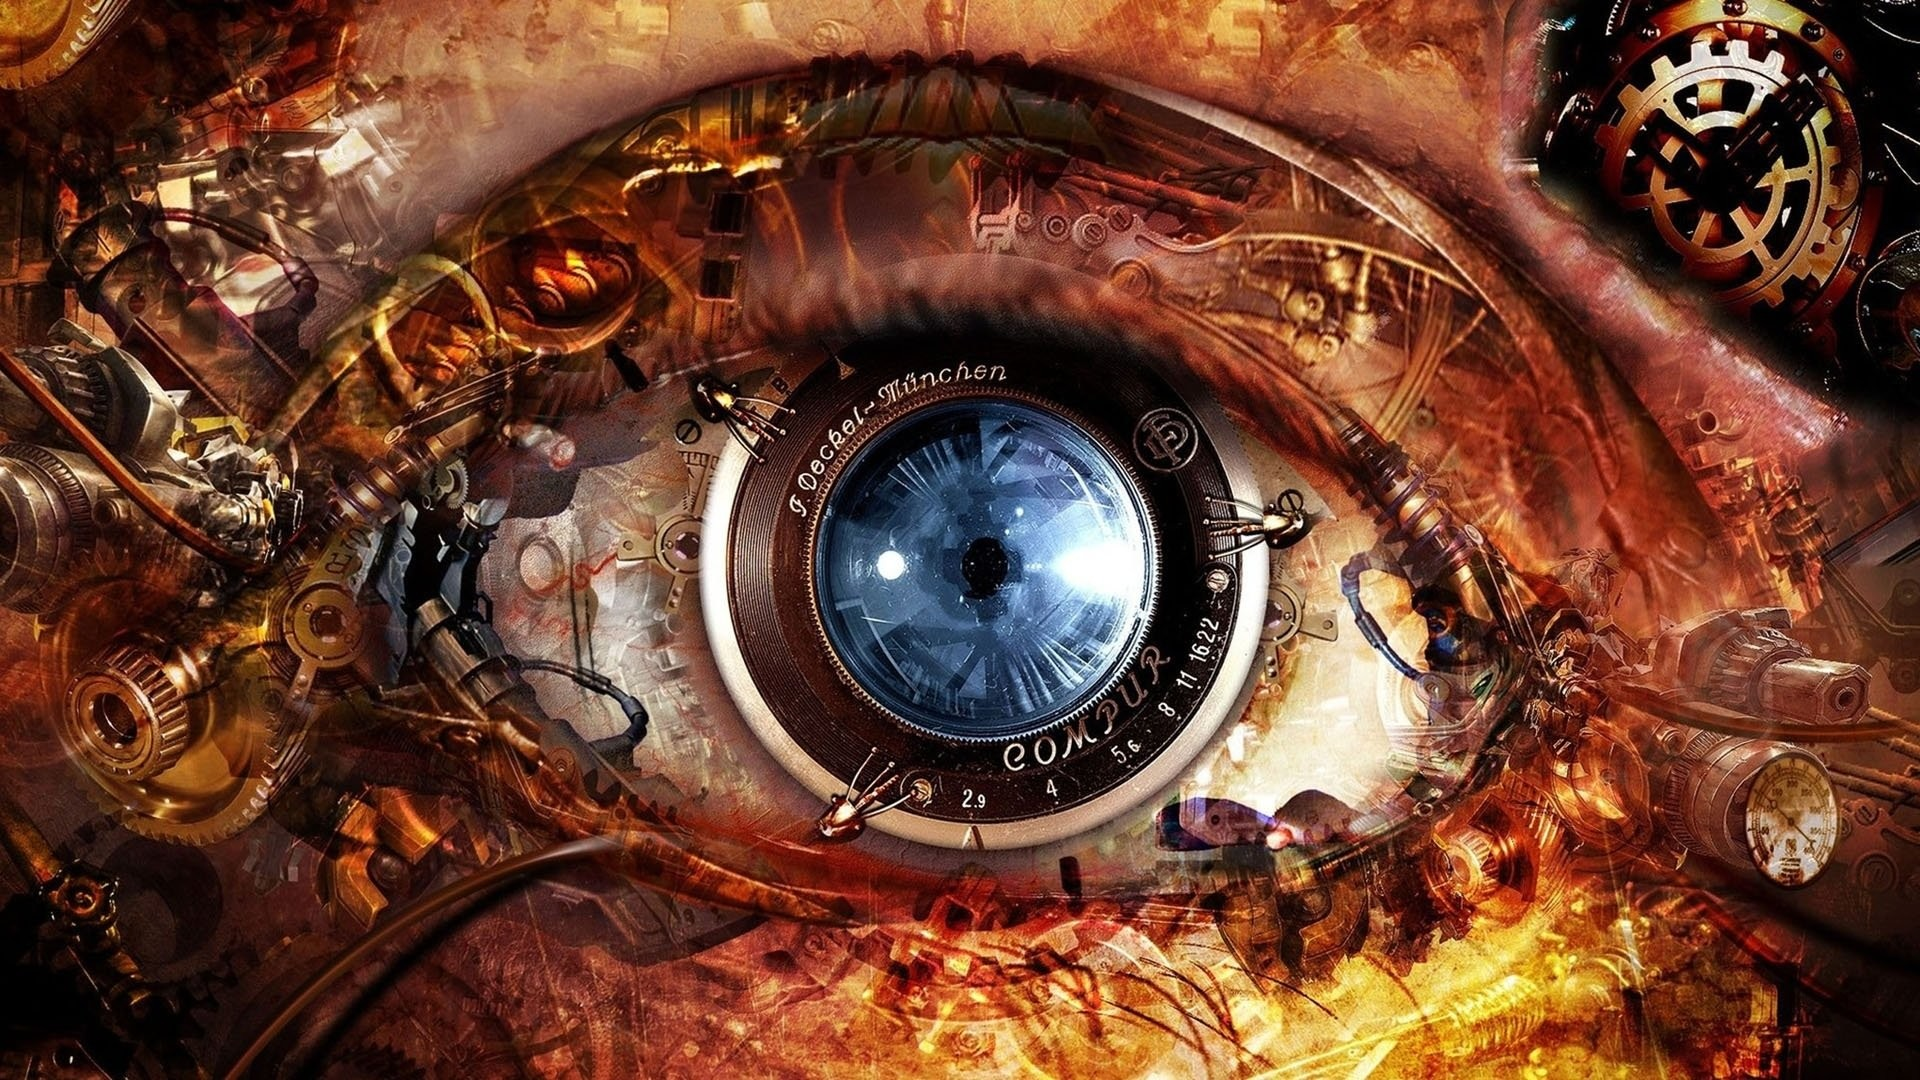 Res: 1920x1080, HD Wallpaper | Background Image ID:149854.  Sci Fi Steampunk